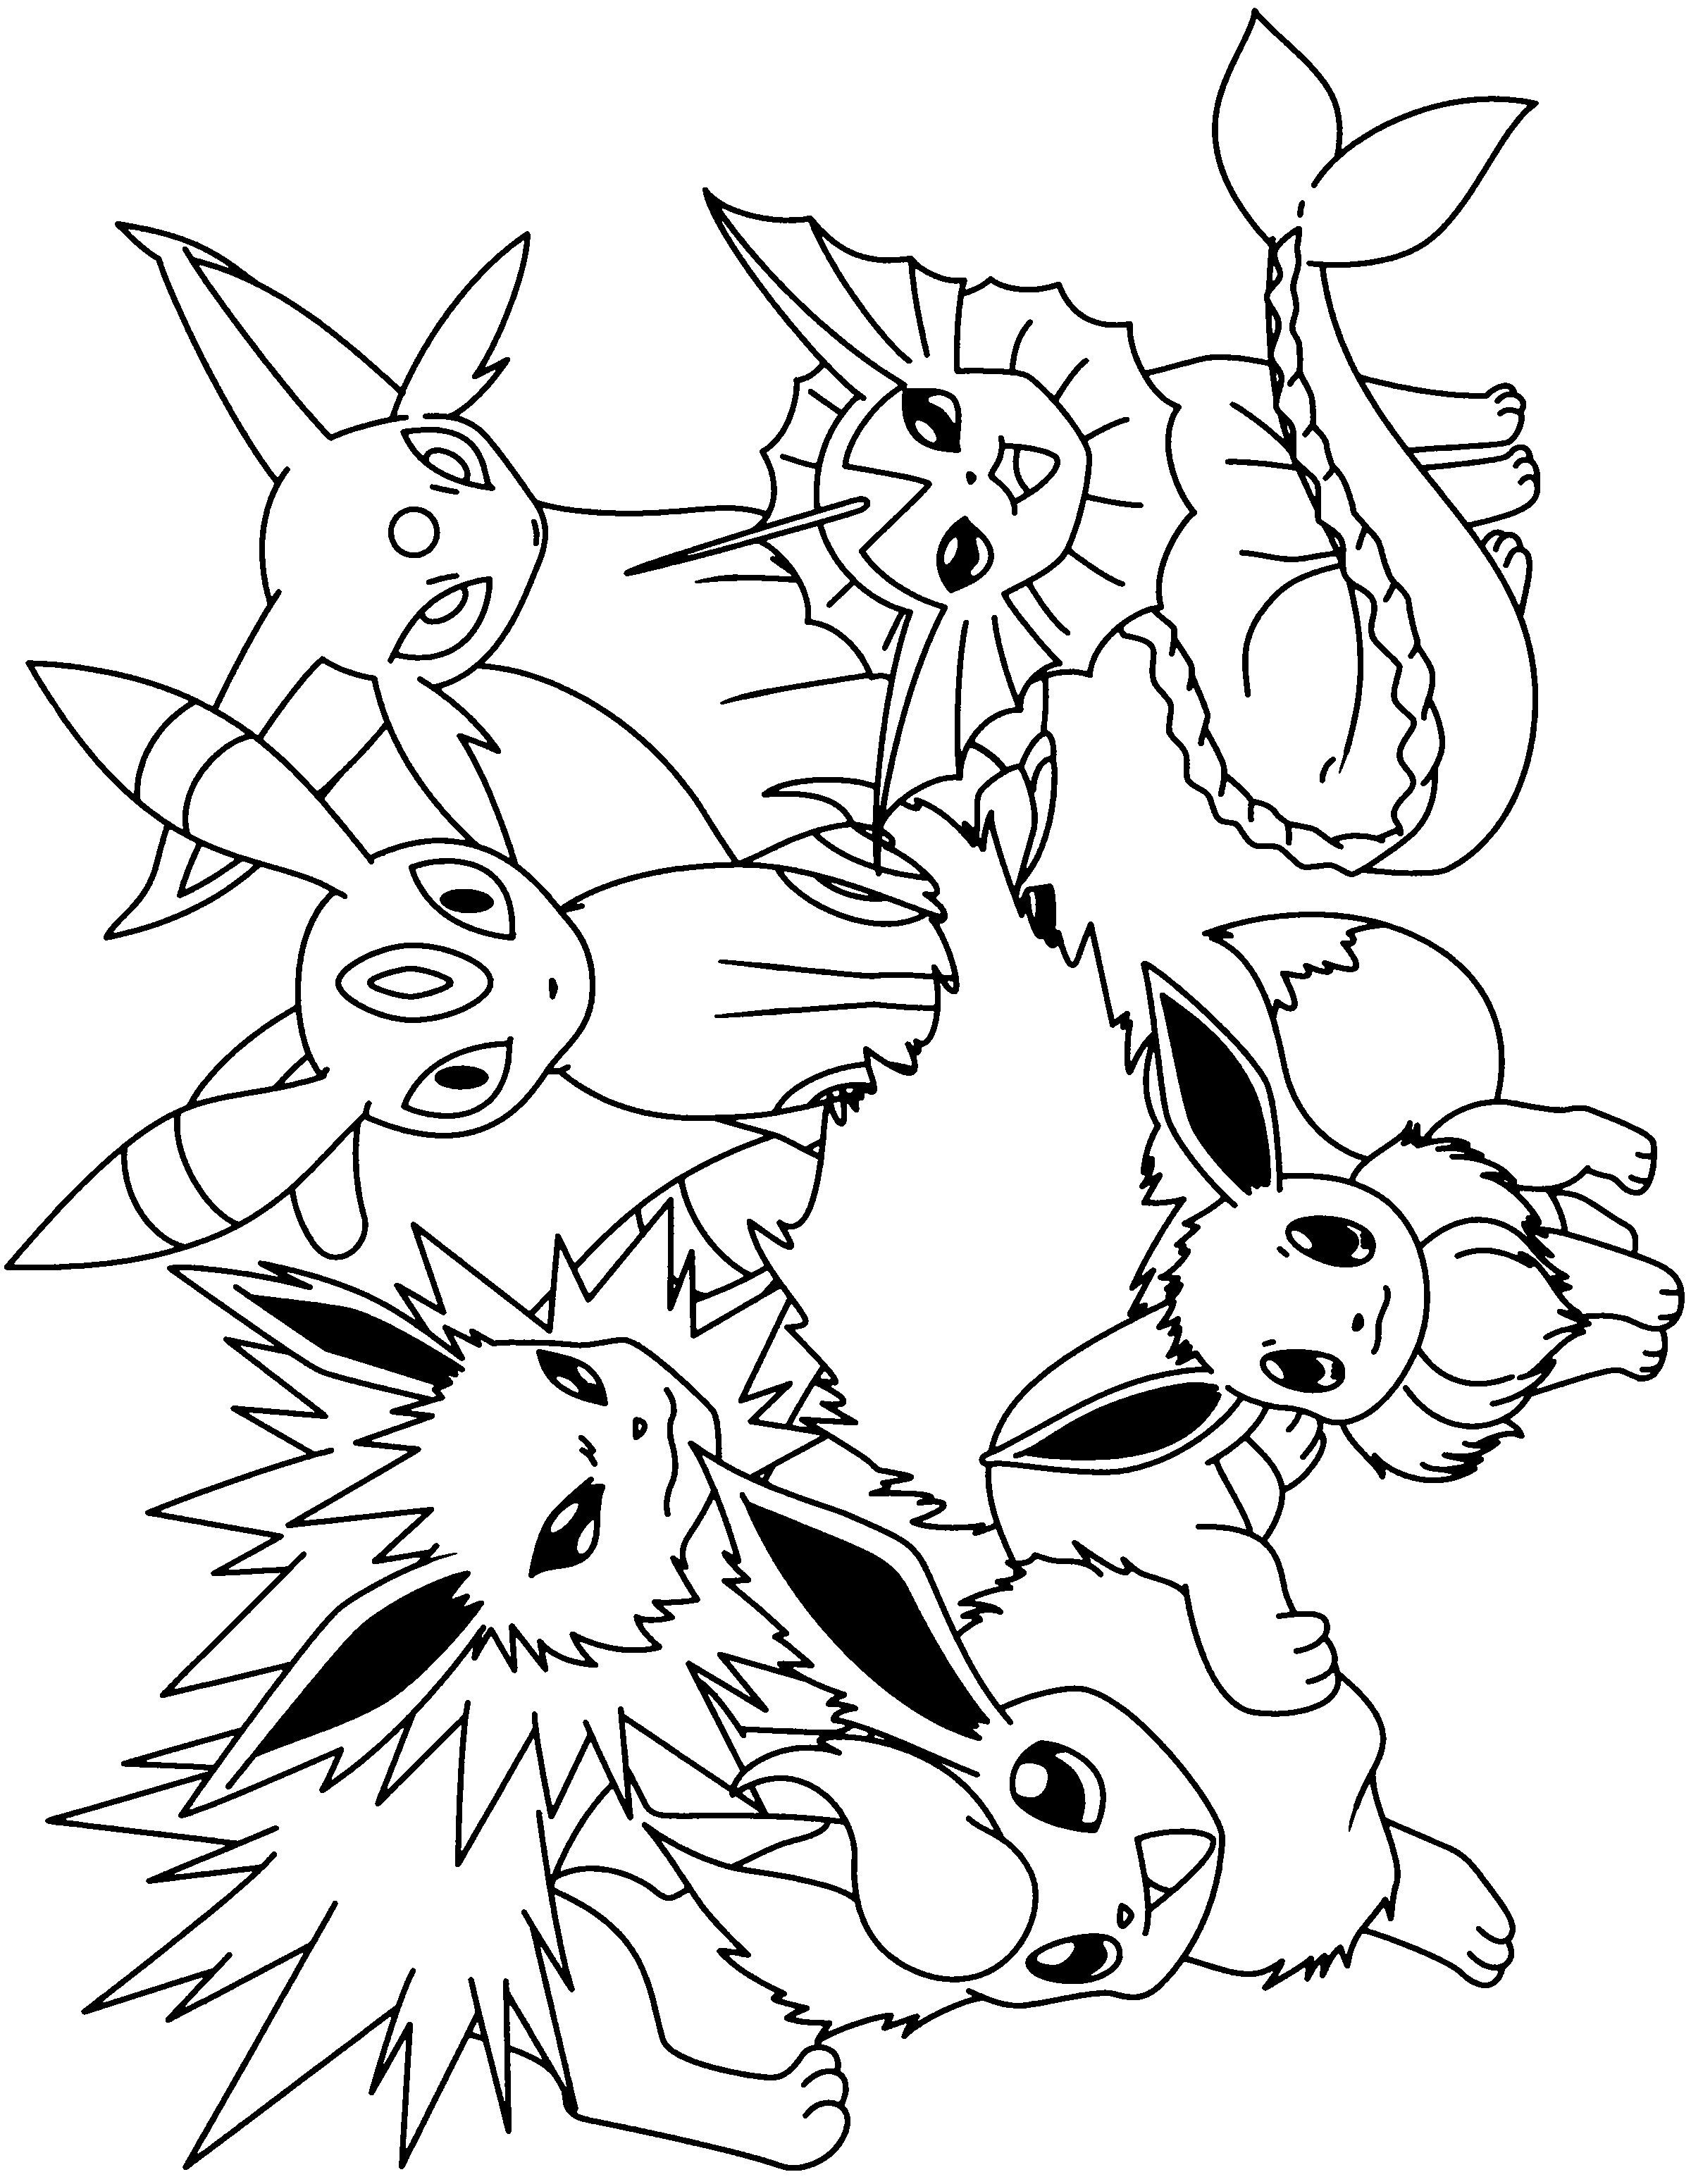 Pokemon Coloring Pages Eevee Evolutions Together Best Of Eevee Pokemon Coloring Pages Eevee E Pokemon Coloring Pages Pokemon Coloring Pokemon Coloring Sheets